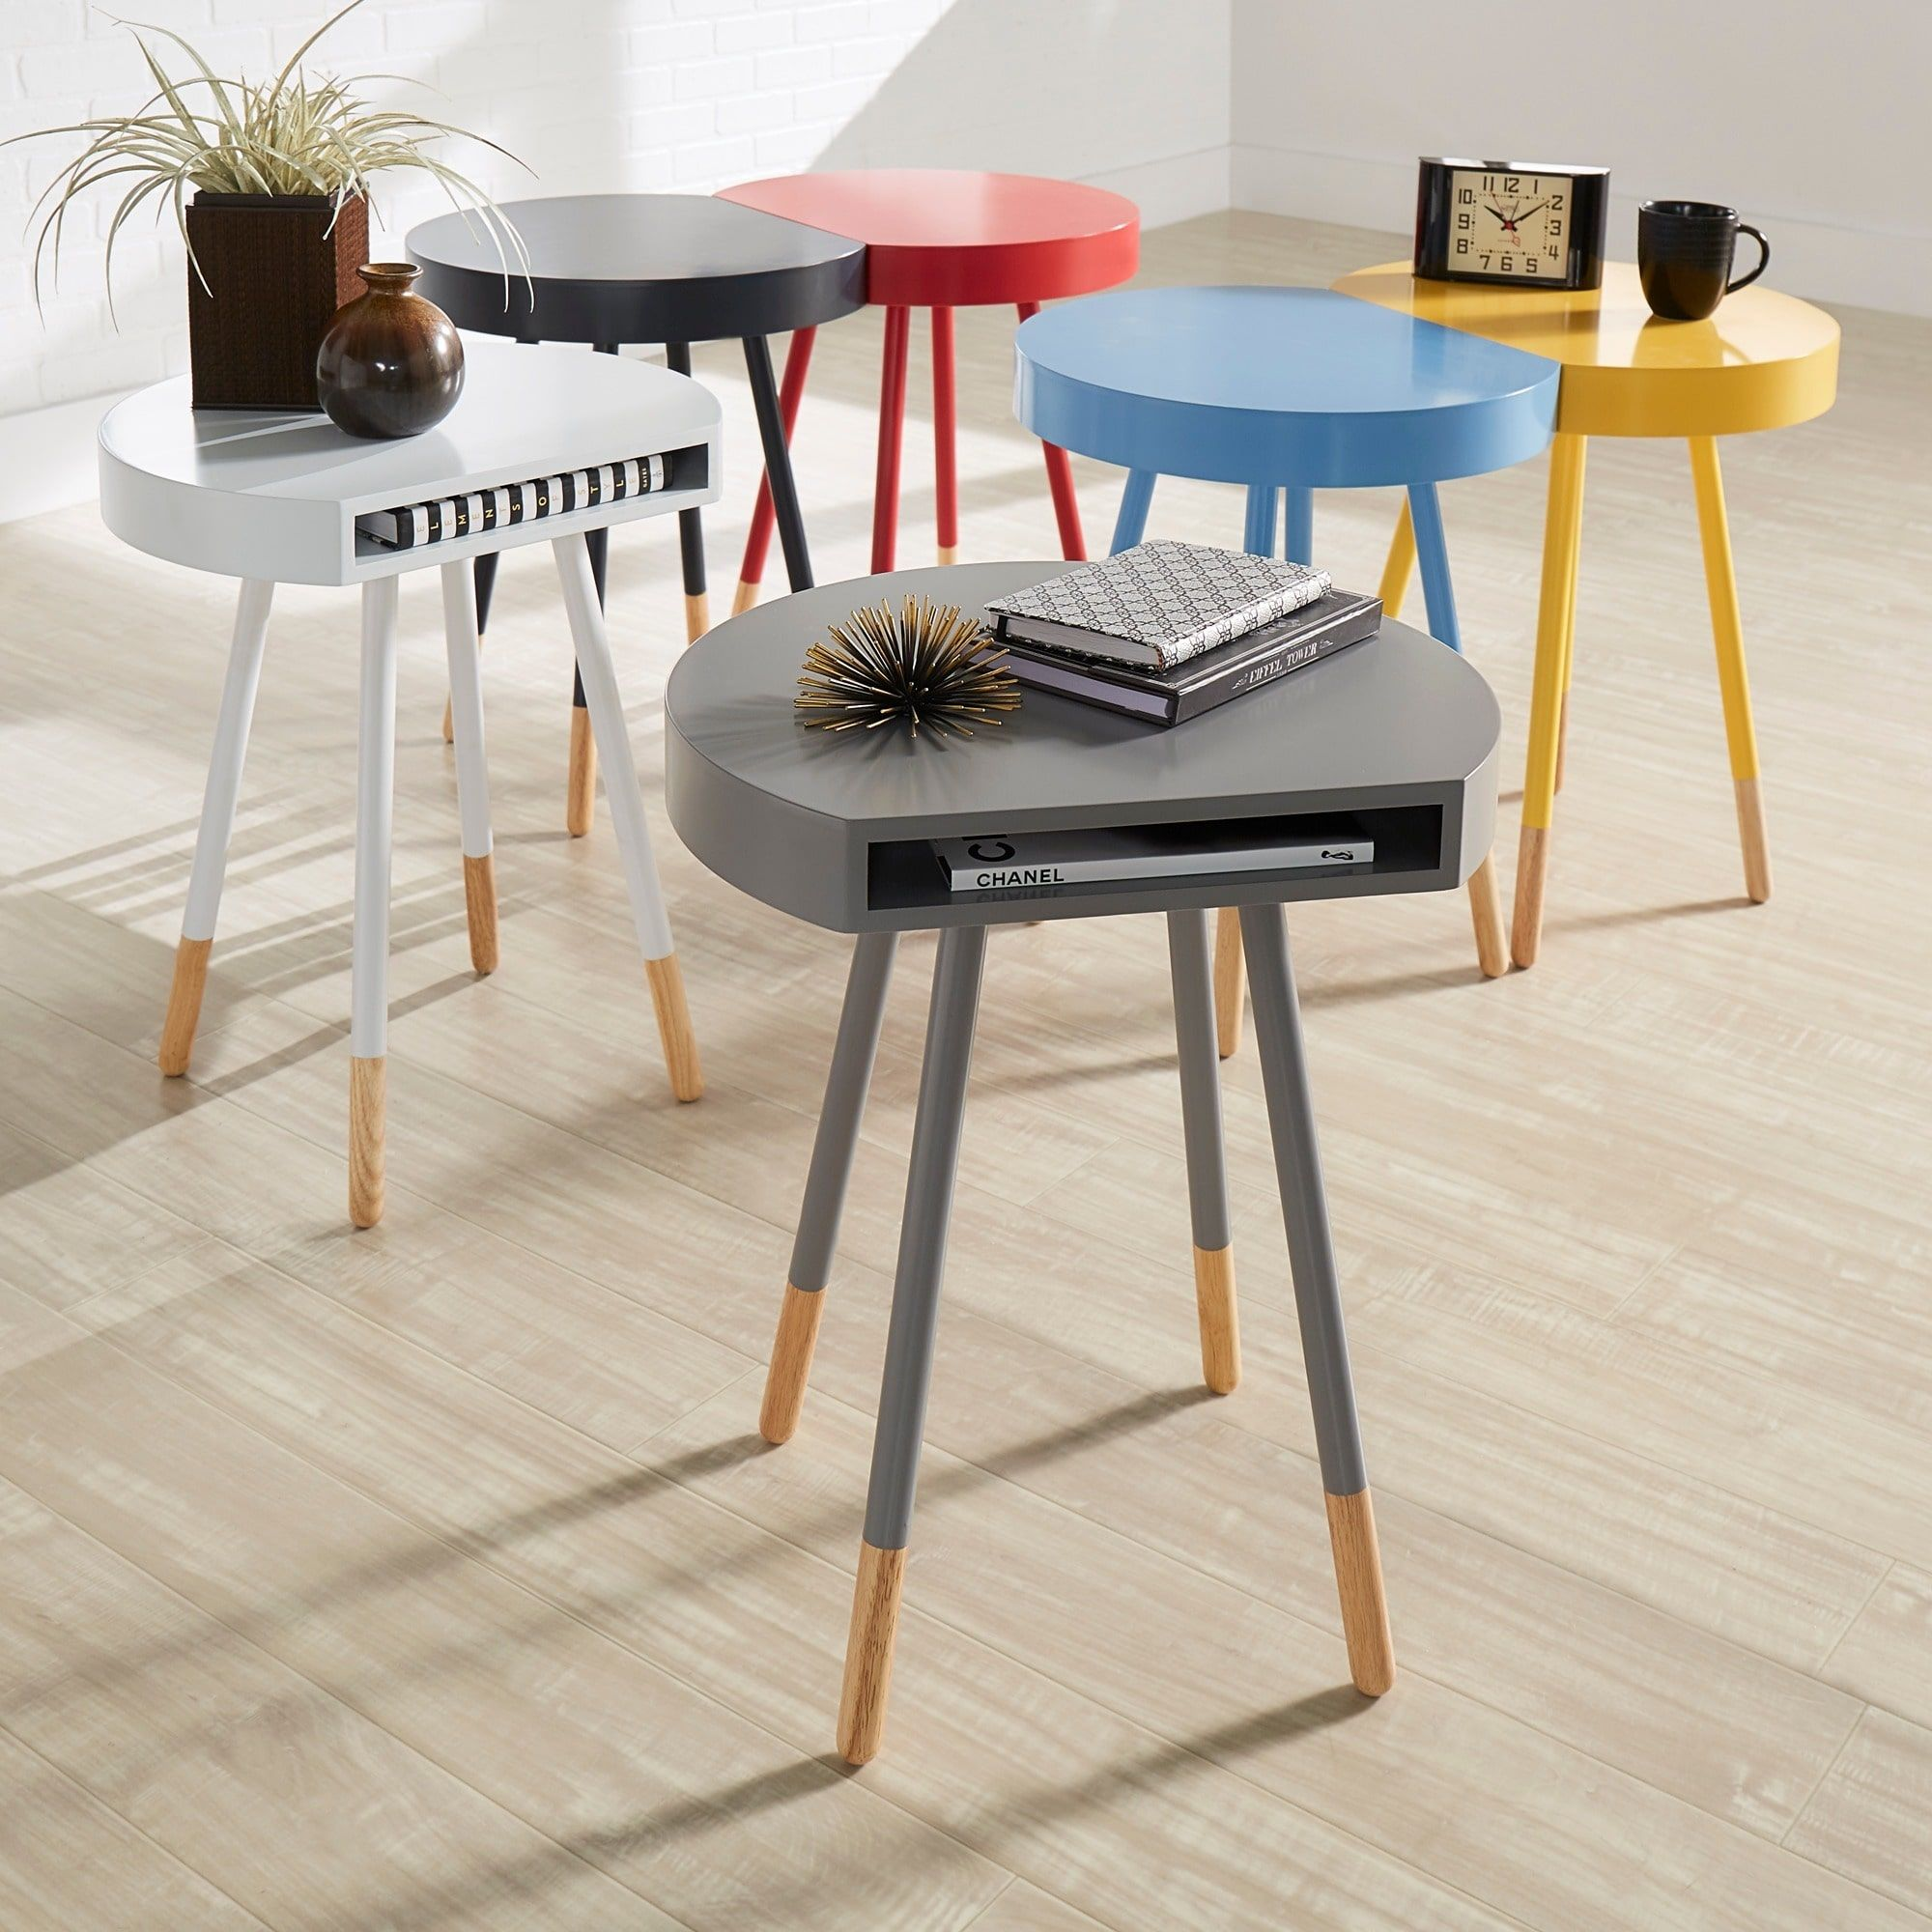 Marcella Paint-dipped Round End Table iNSPIRE Q Modern by iNSPIRE Q